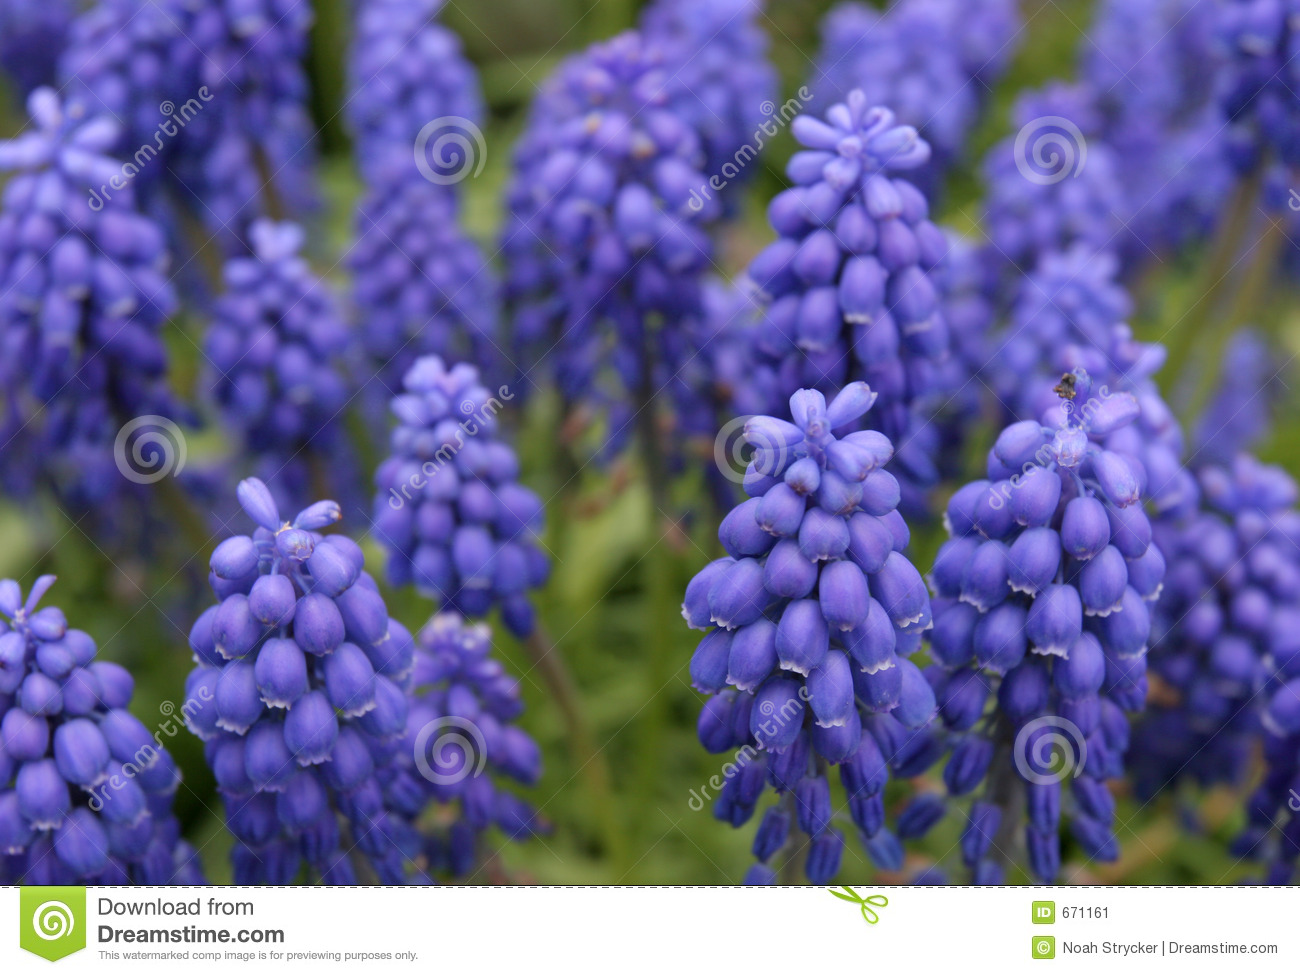 Blue or purple flowers roho4senses blue or purple flowers izmirmasajfo